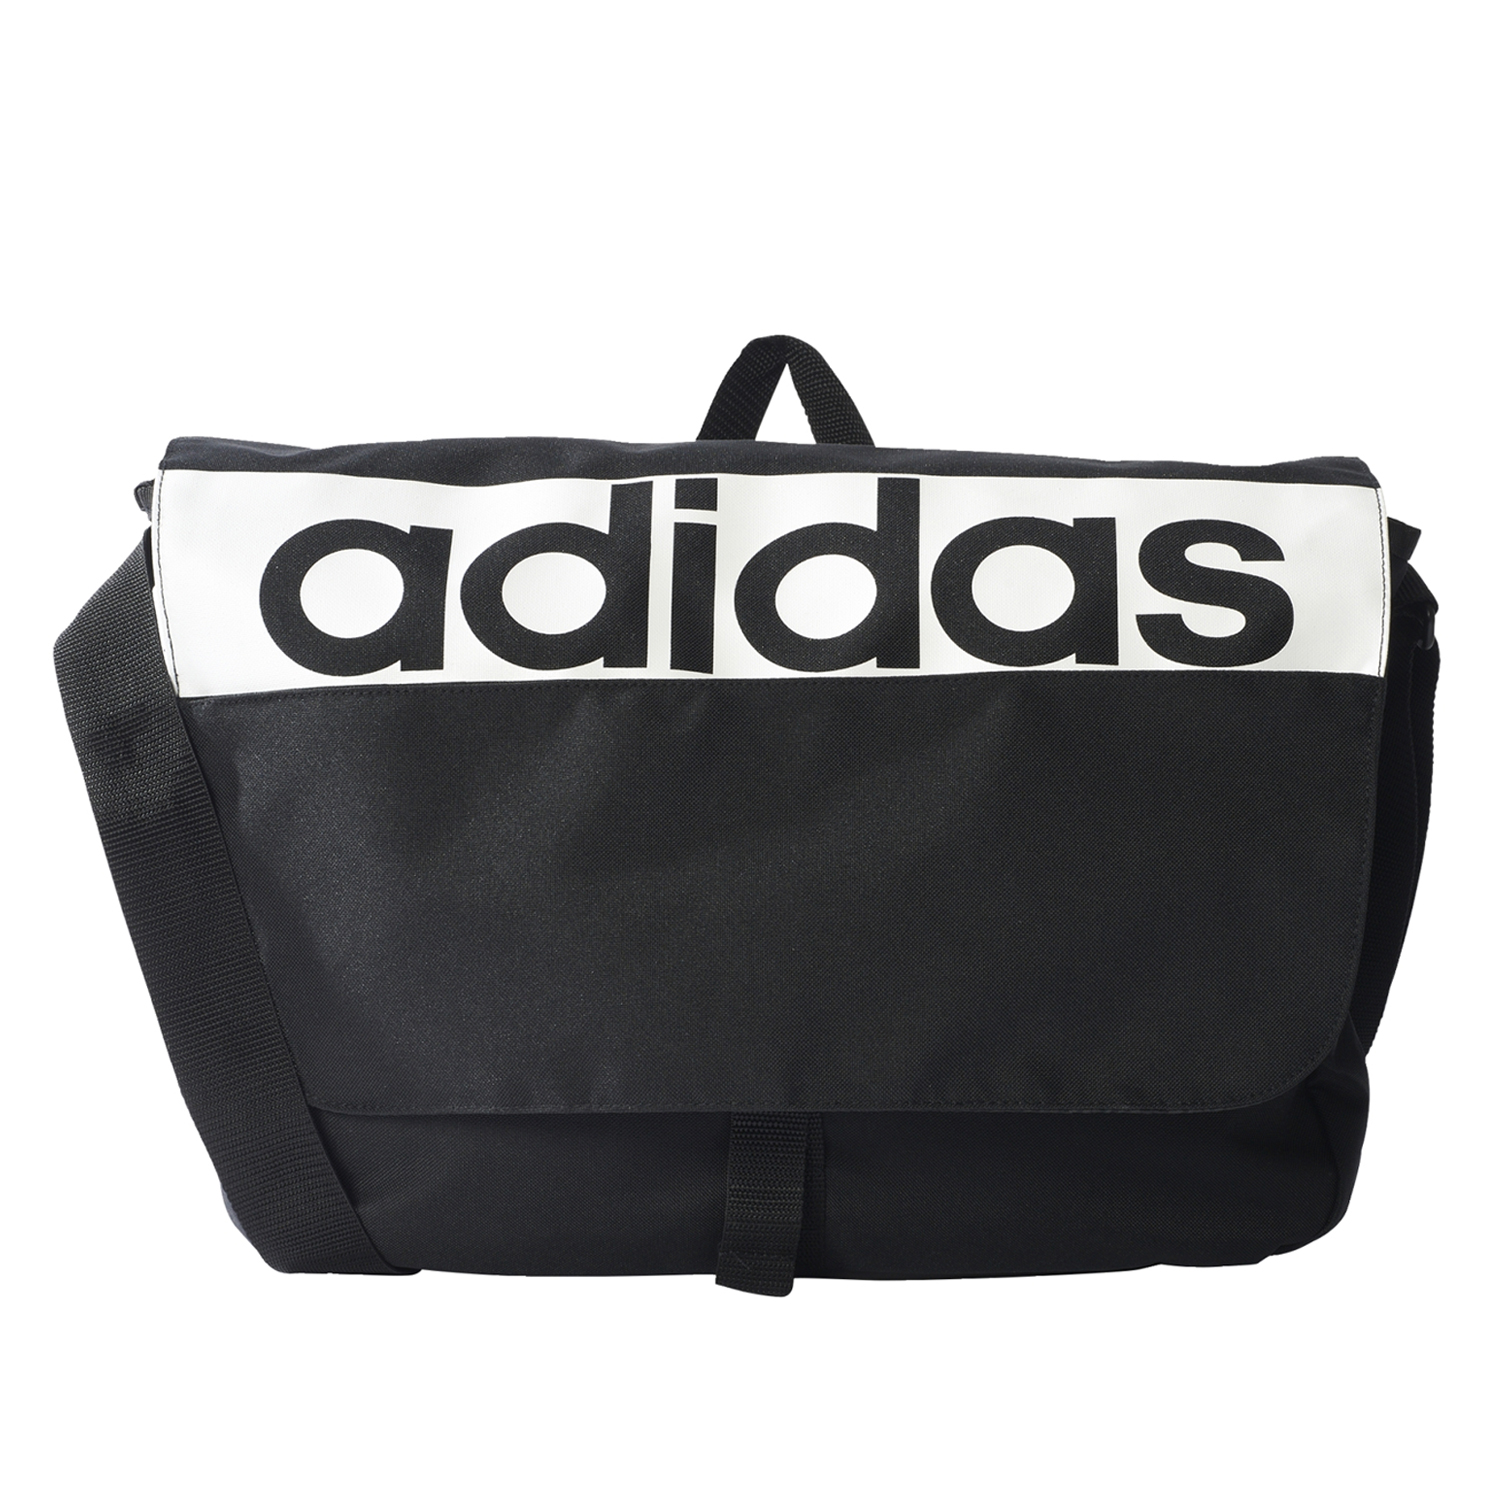 An image of Adidas Linear Performance Messenger Bag Black - One Size, BLK/WH